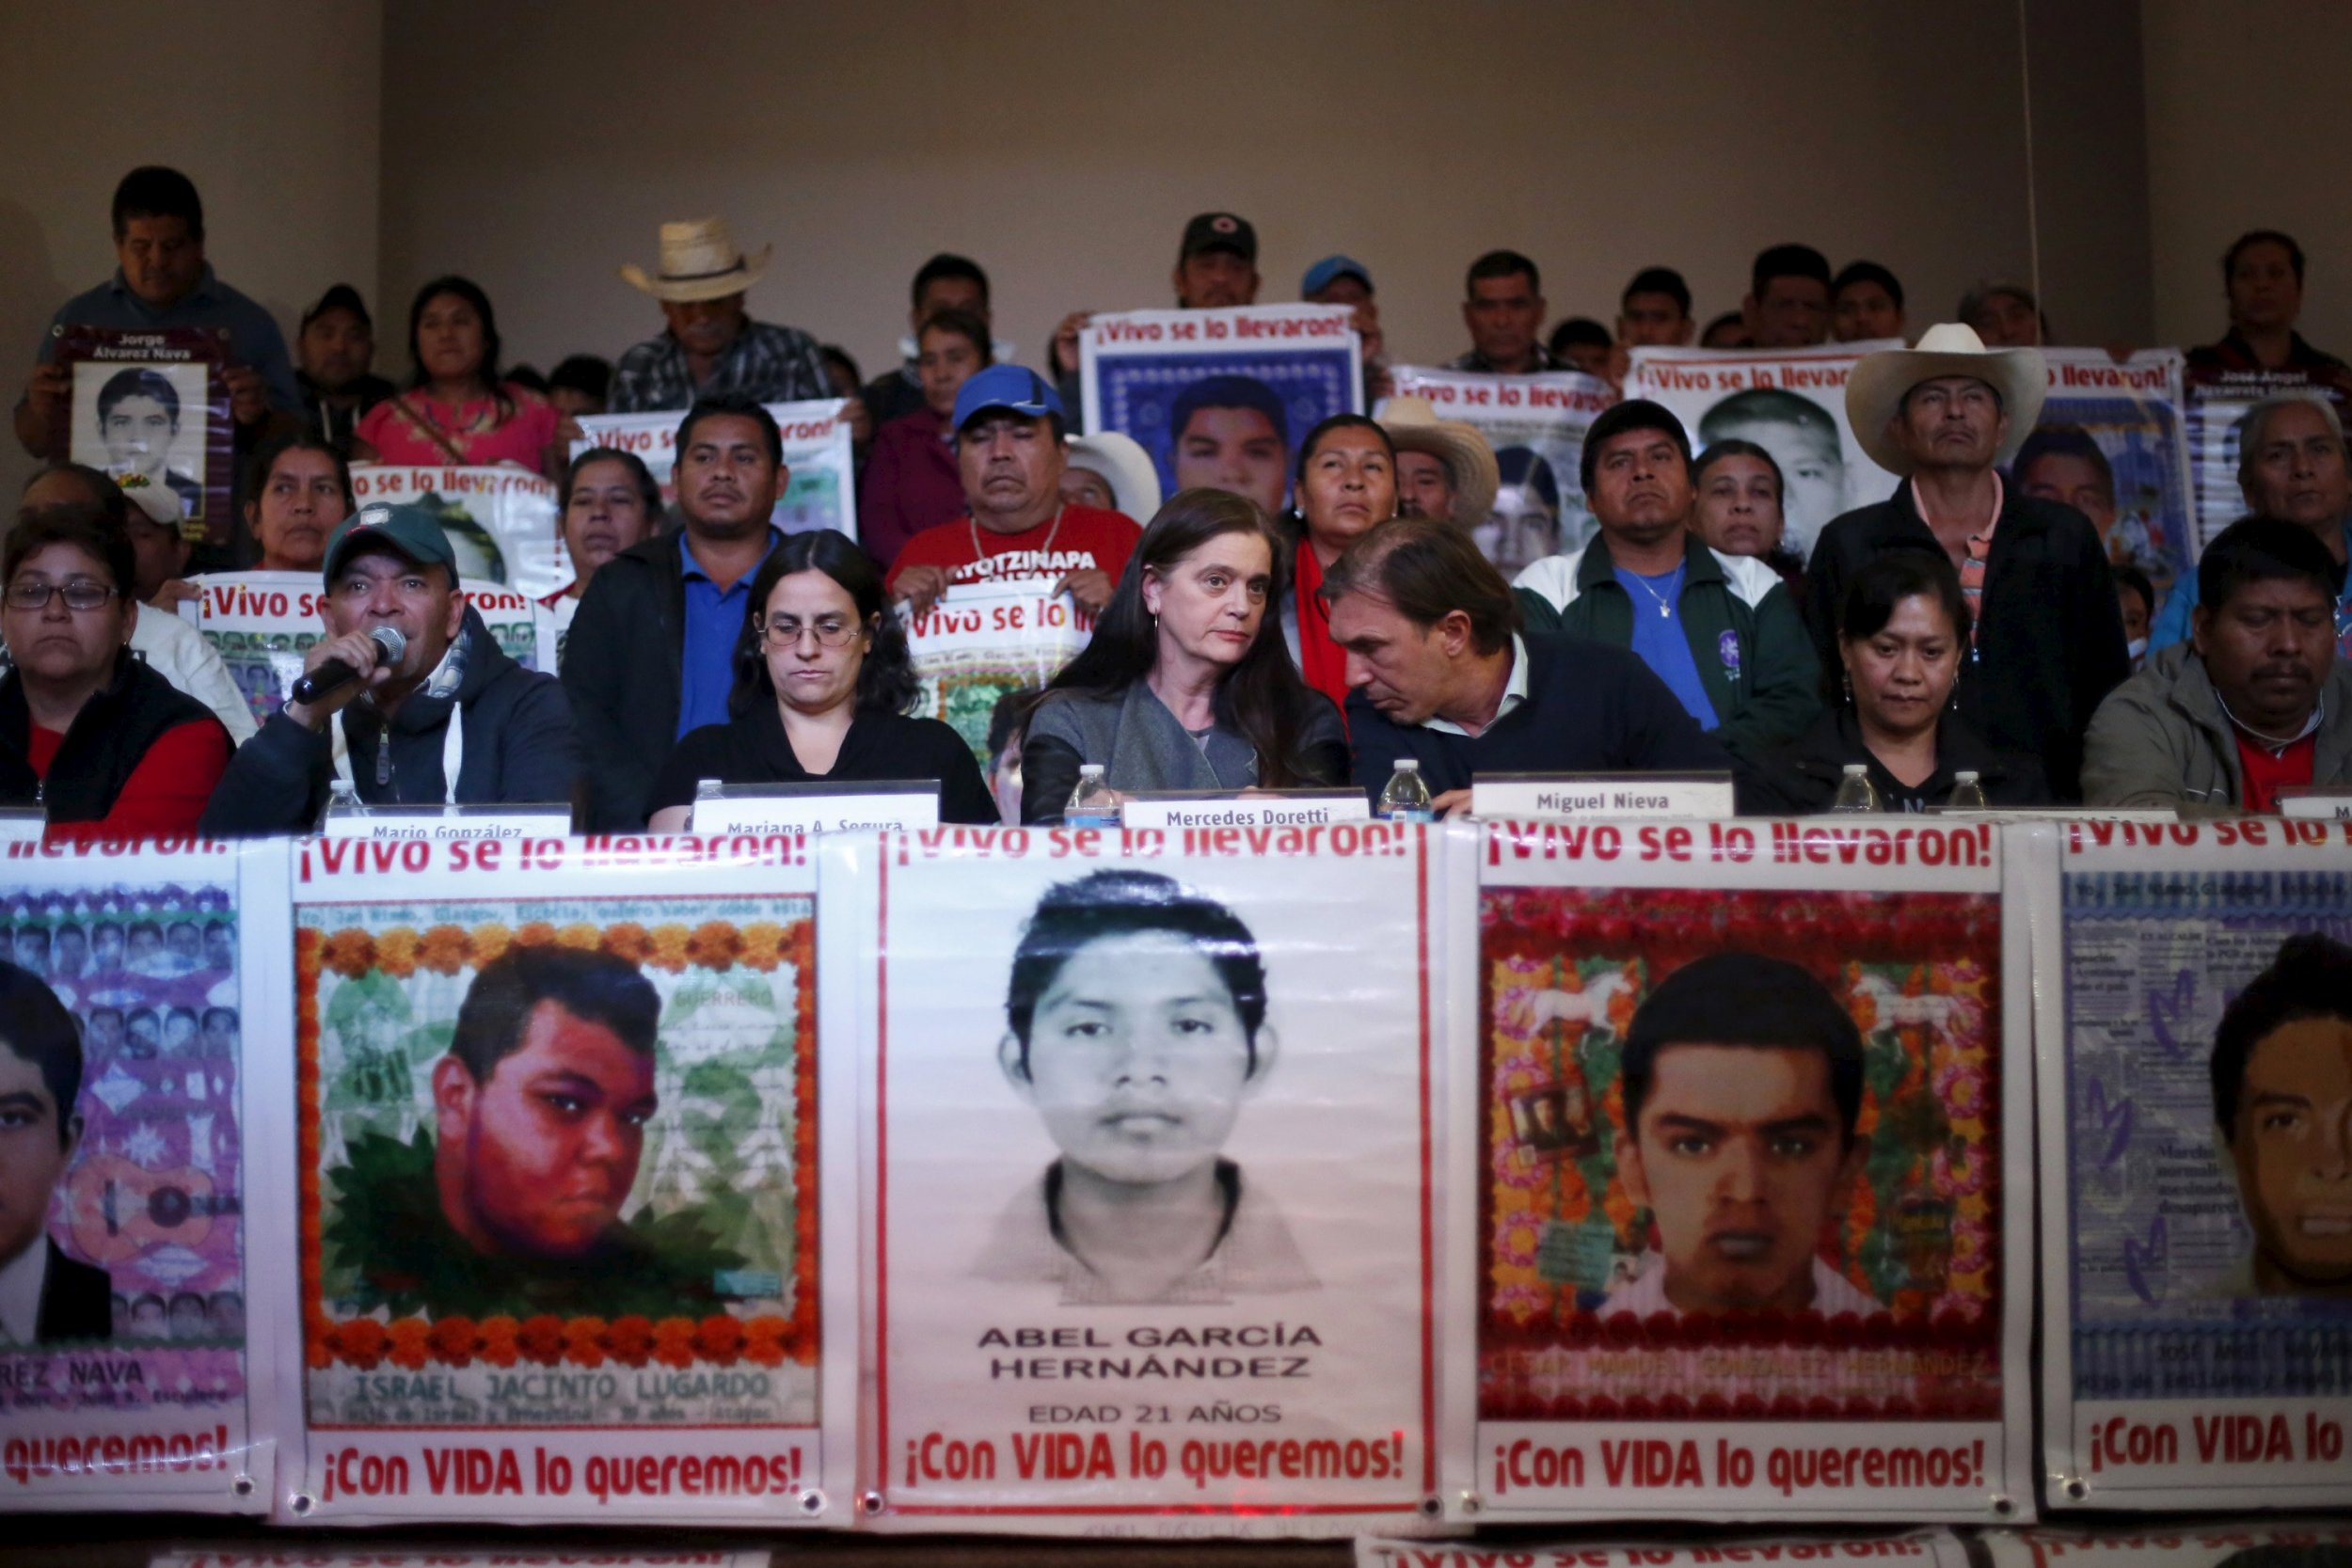 43 missing students in mexico